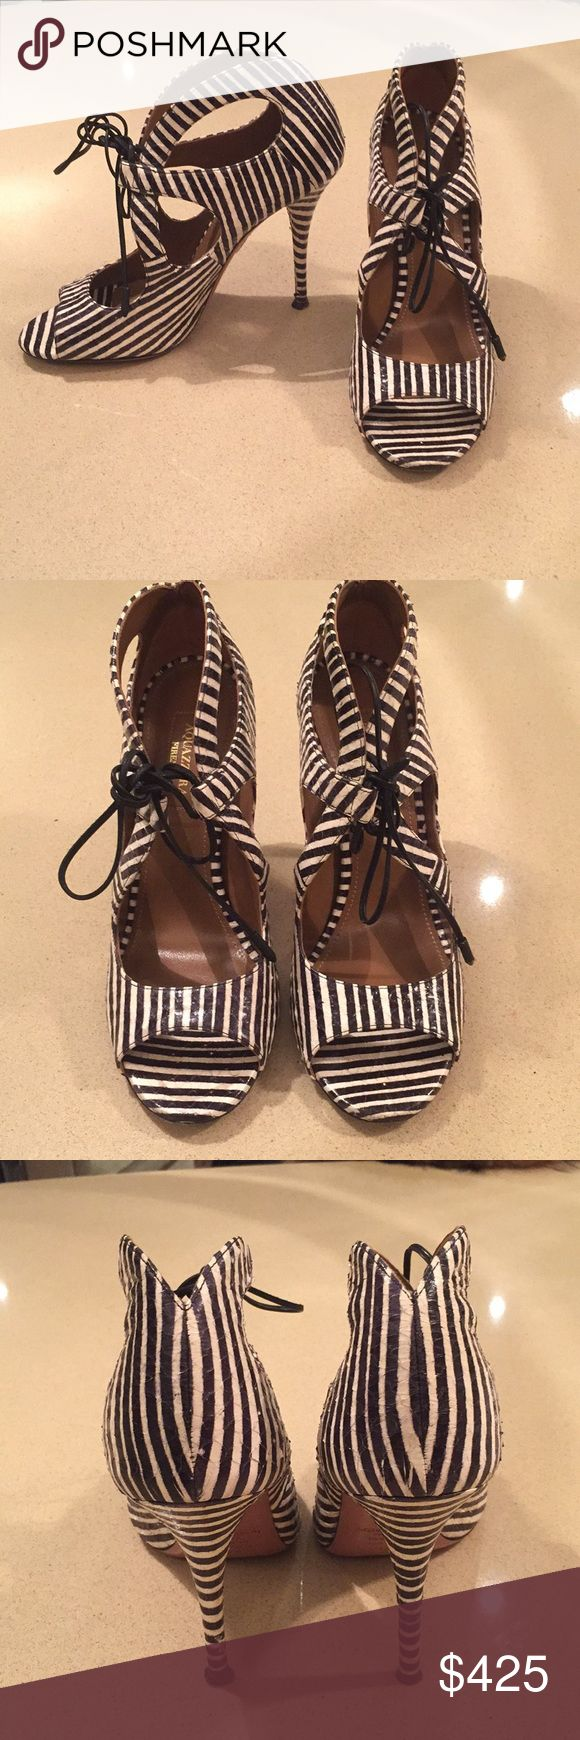 Aquazzura black and white sandal 37.5 Great condition unique  Aquazzura black and white stripe sandals with leather ankle tie. Has a subtle crackled leather look. Some scuff on bottom soles. Aquazzura Shoes Sandals